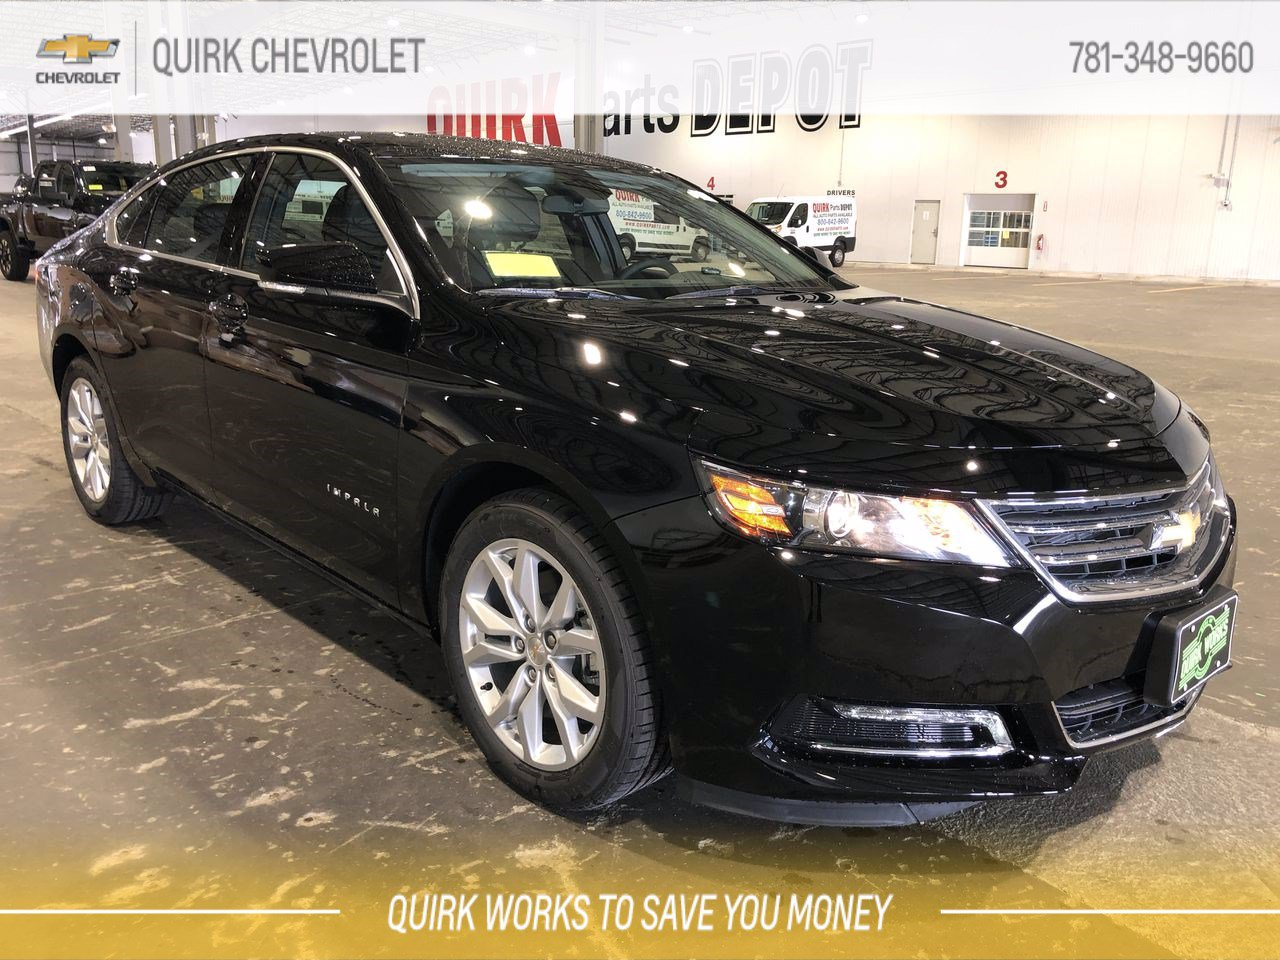 New 2020 Chevrolet Impala Lt 4dr Car In Braintree C67860 Quirk